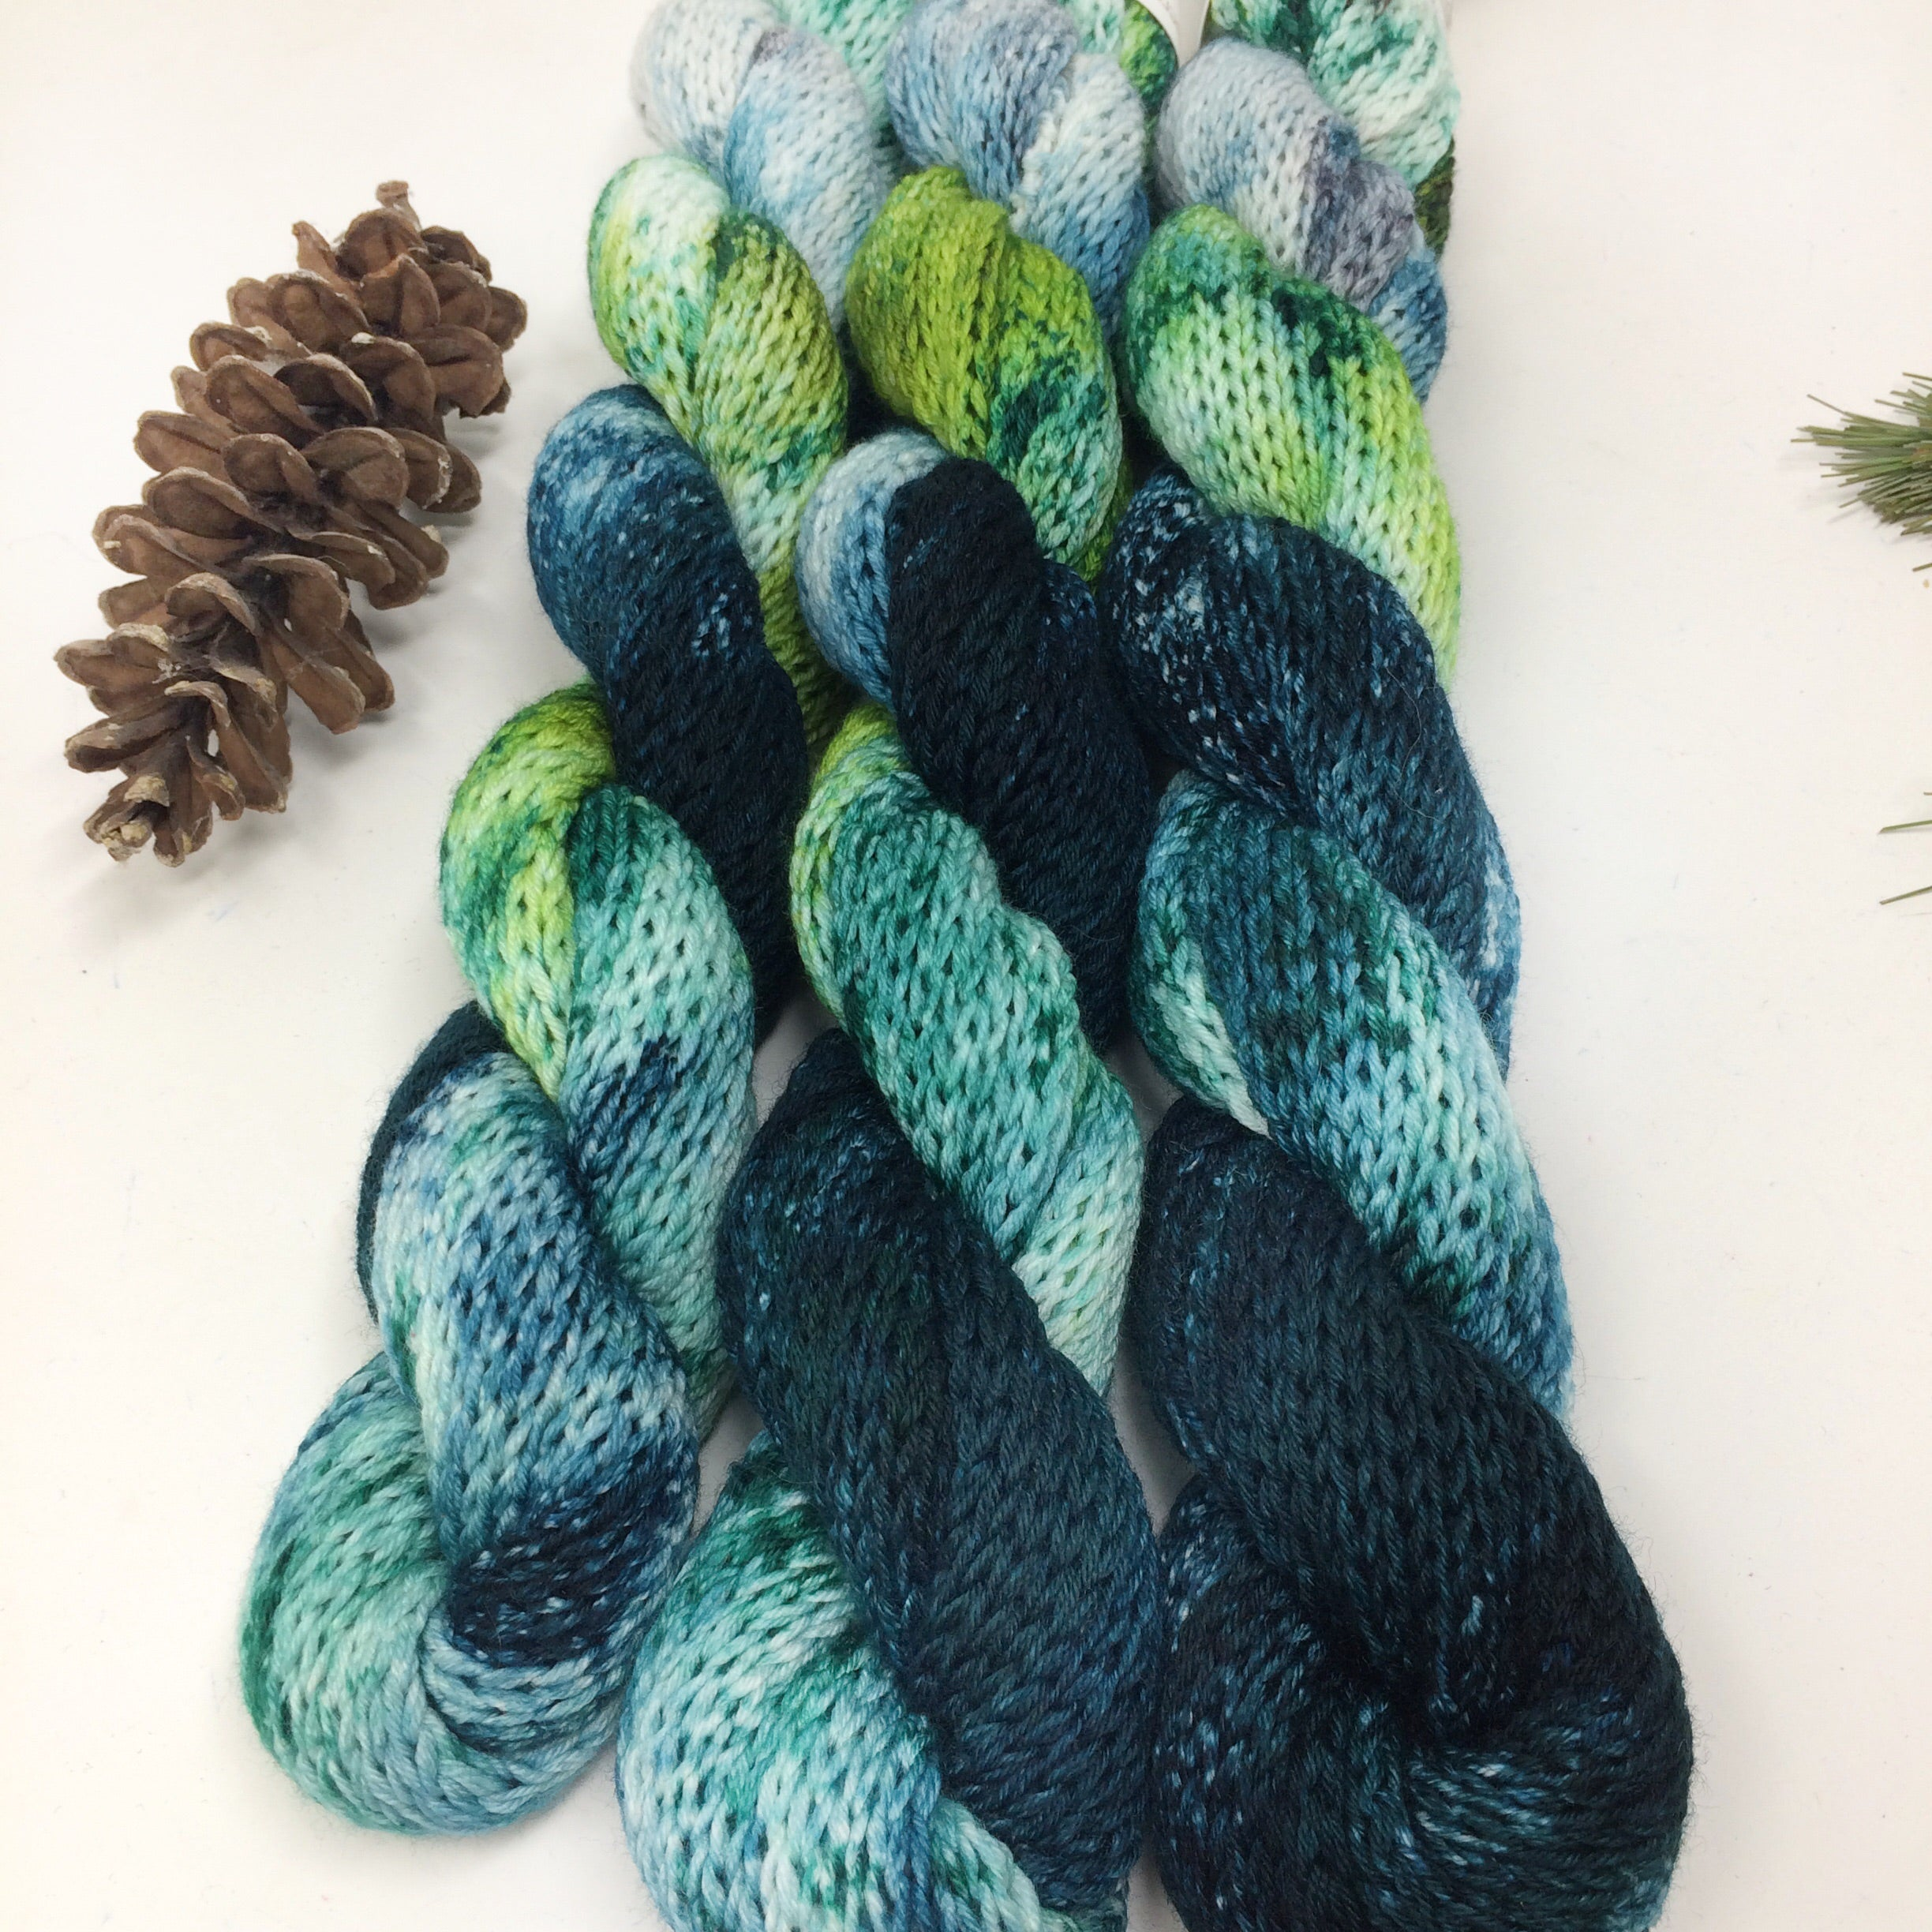 Frozen Pine - double knit sock blanks - matching socks or wrist warmers